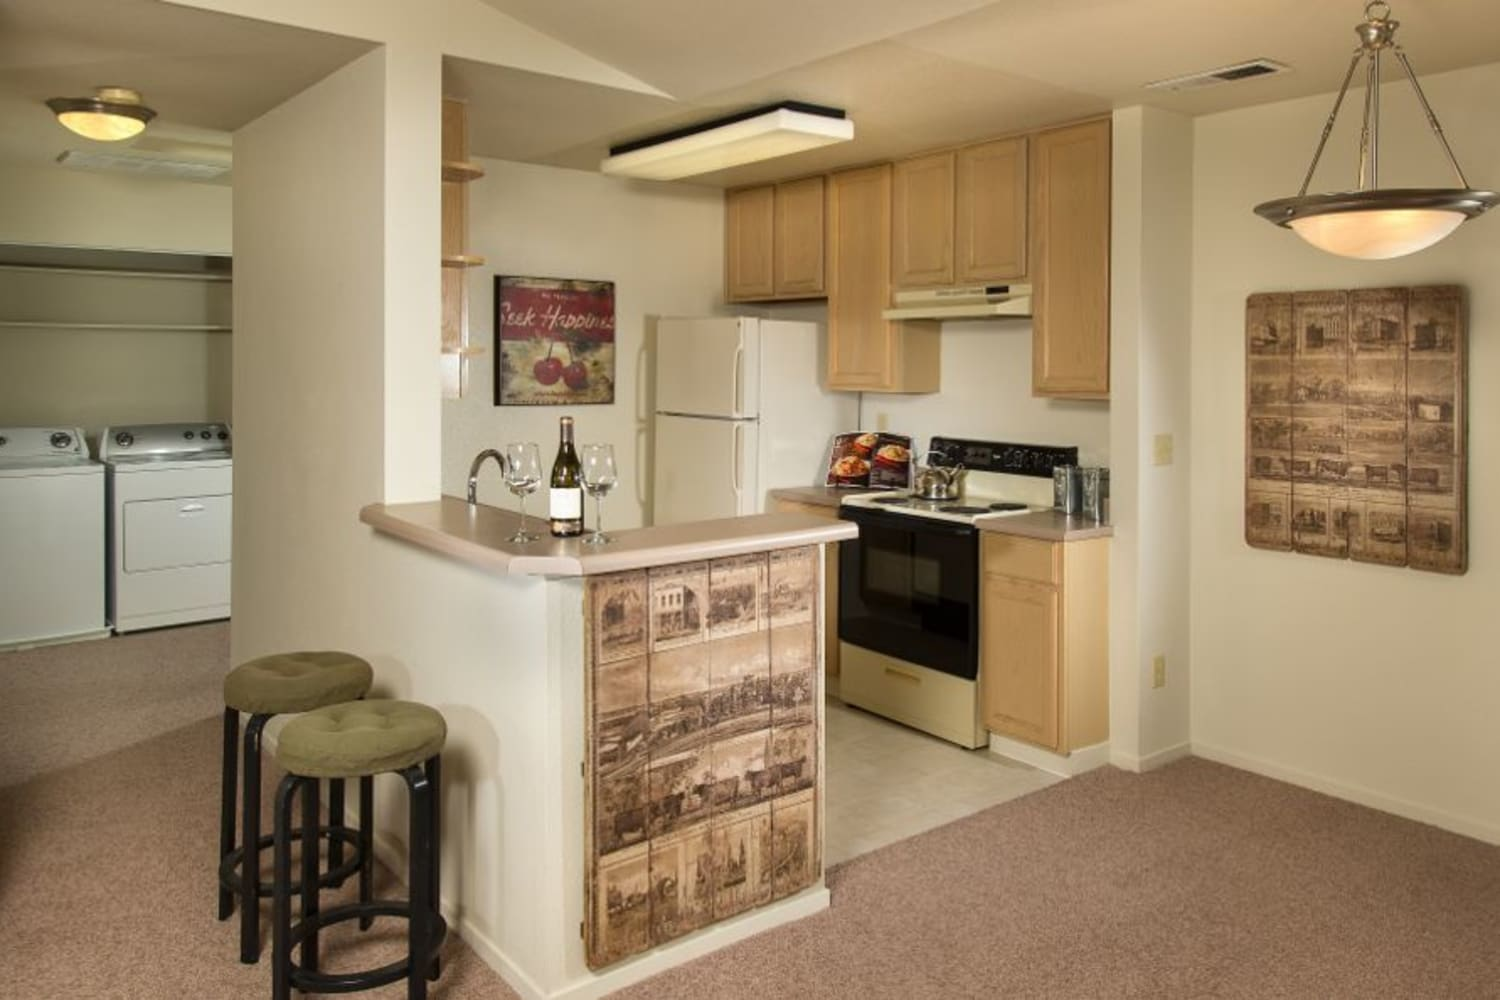 Upgraded kitchens at La Vina Apartments in Livermore, California